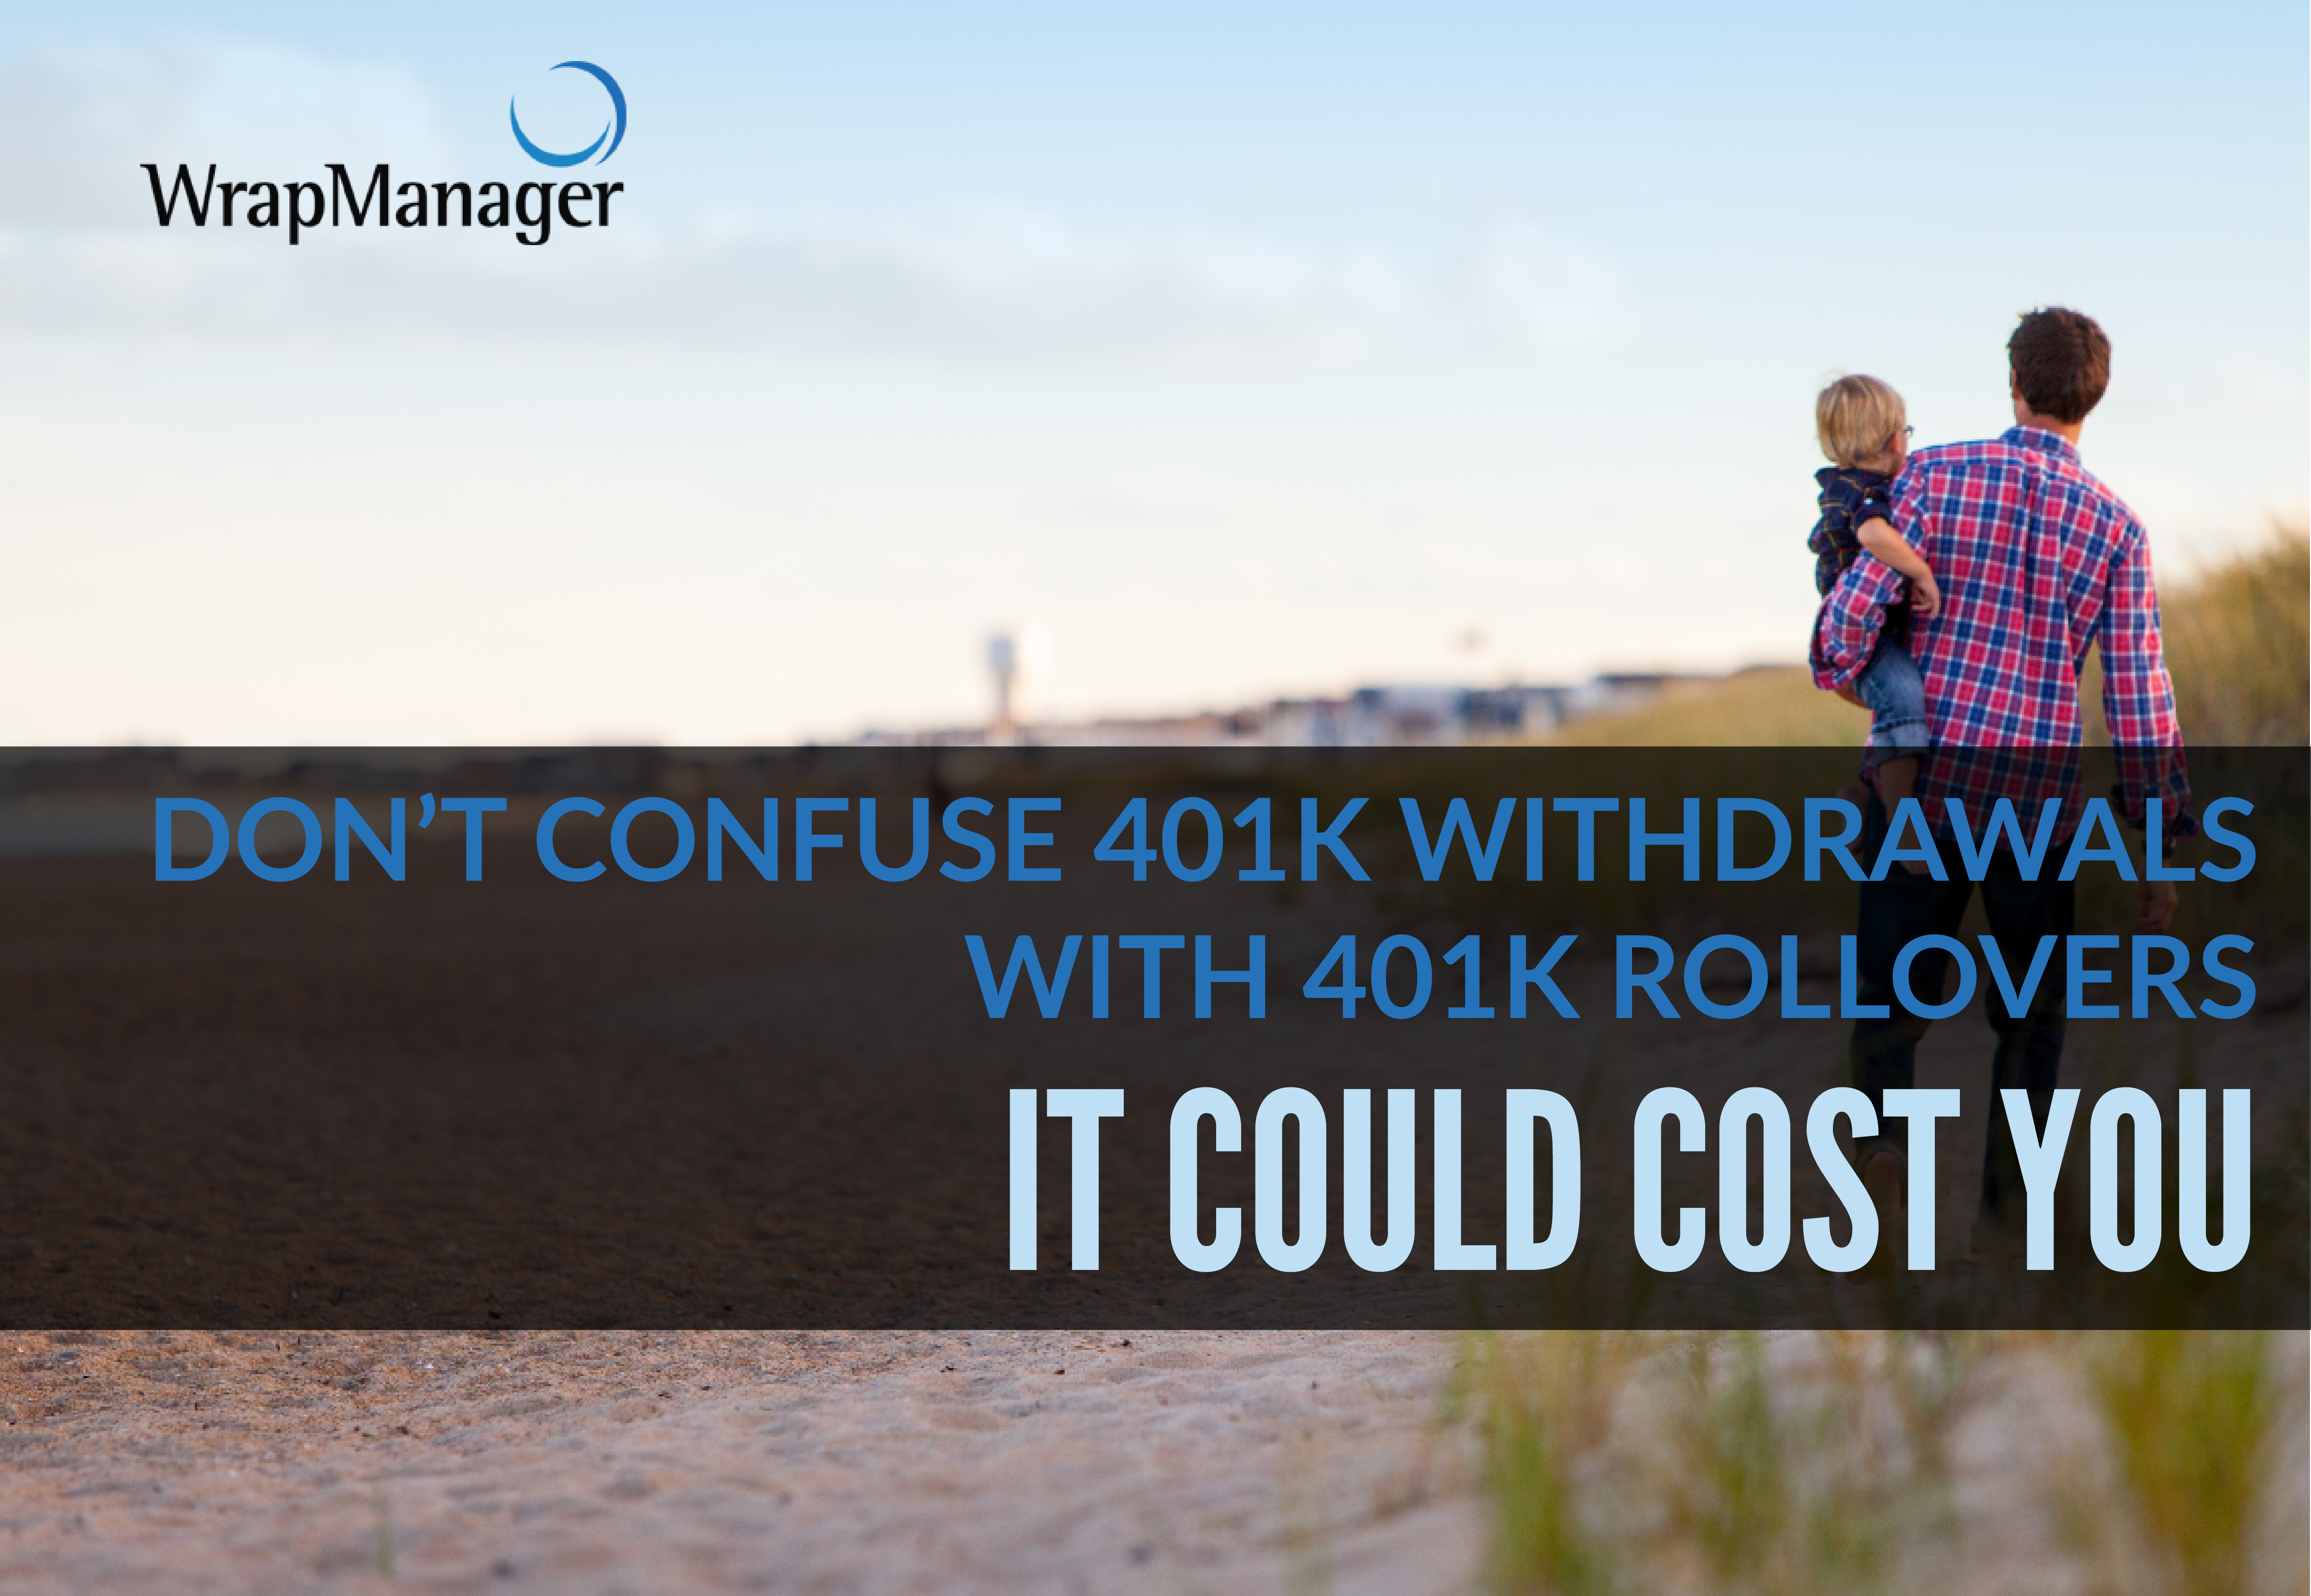 Confusing 401k Rollovers with a 401k Withdrawal Could Cost You